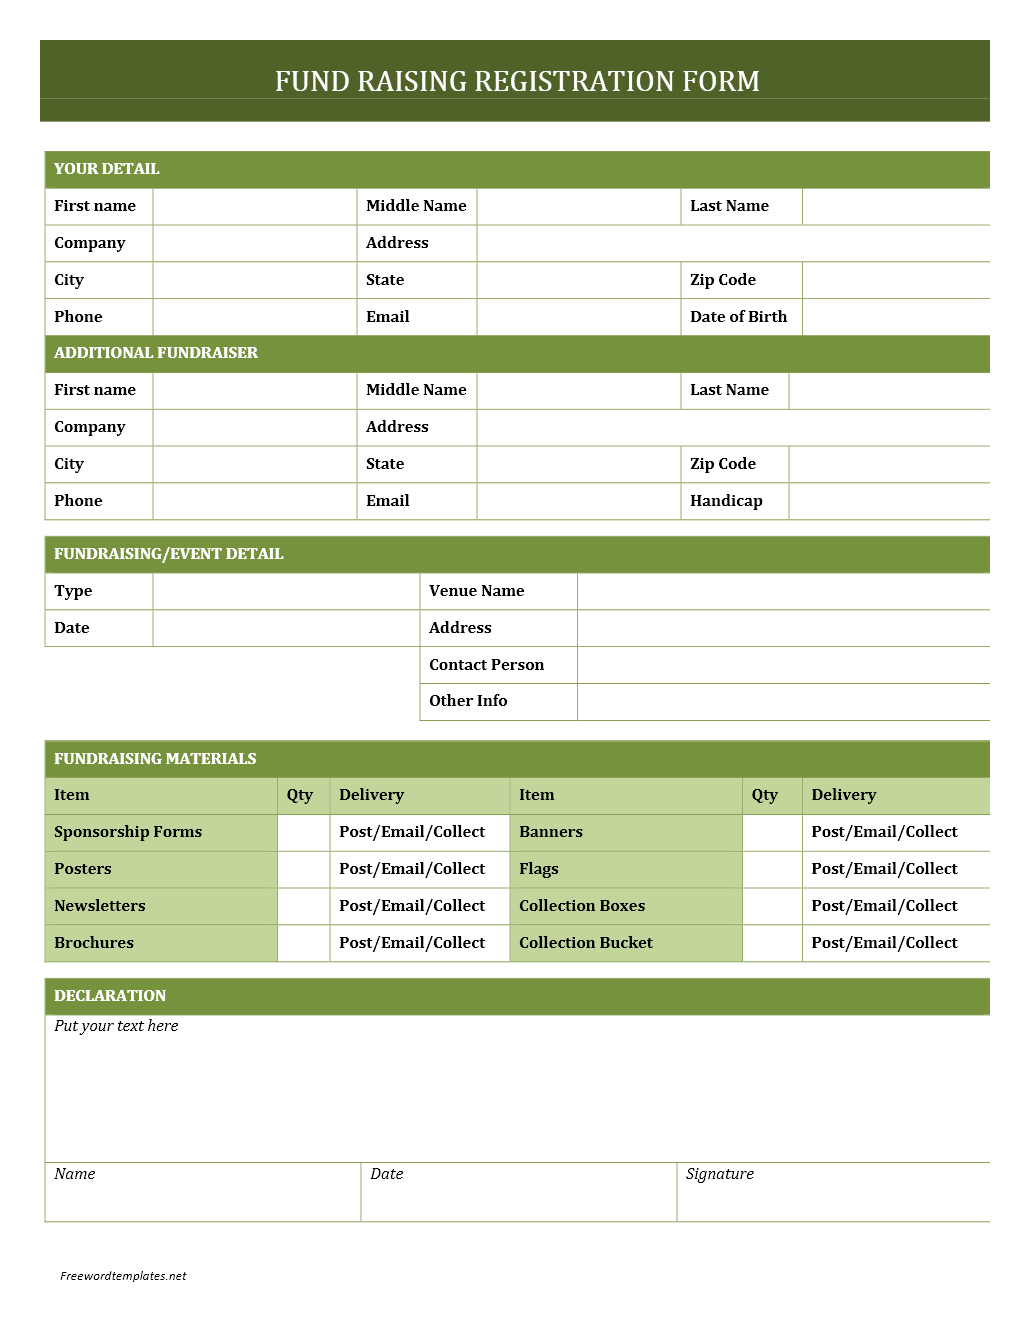 training course application form template - fundraising registration form